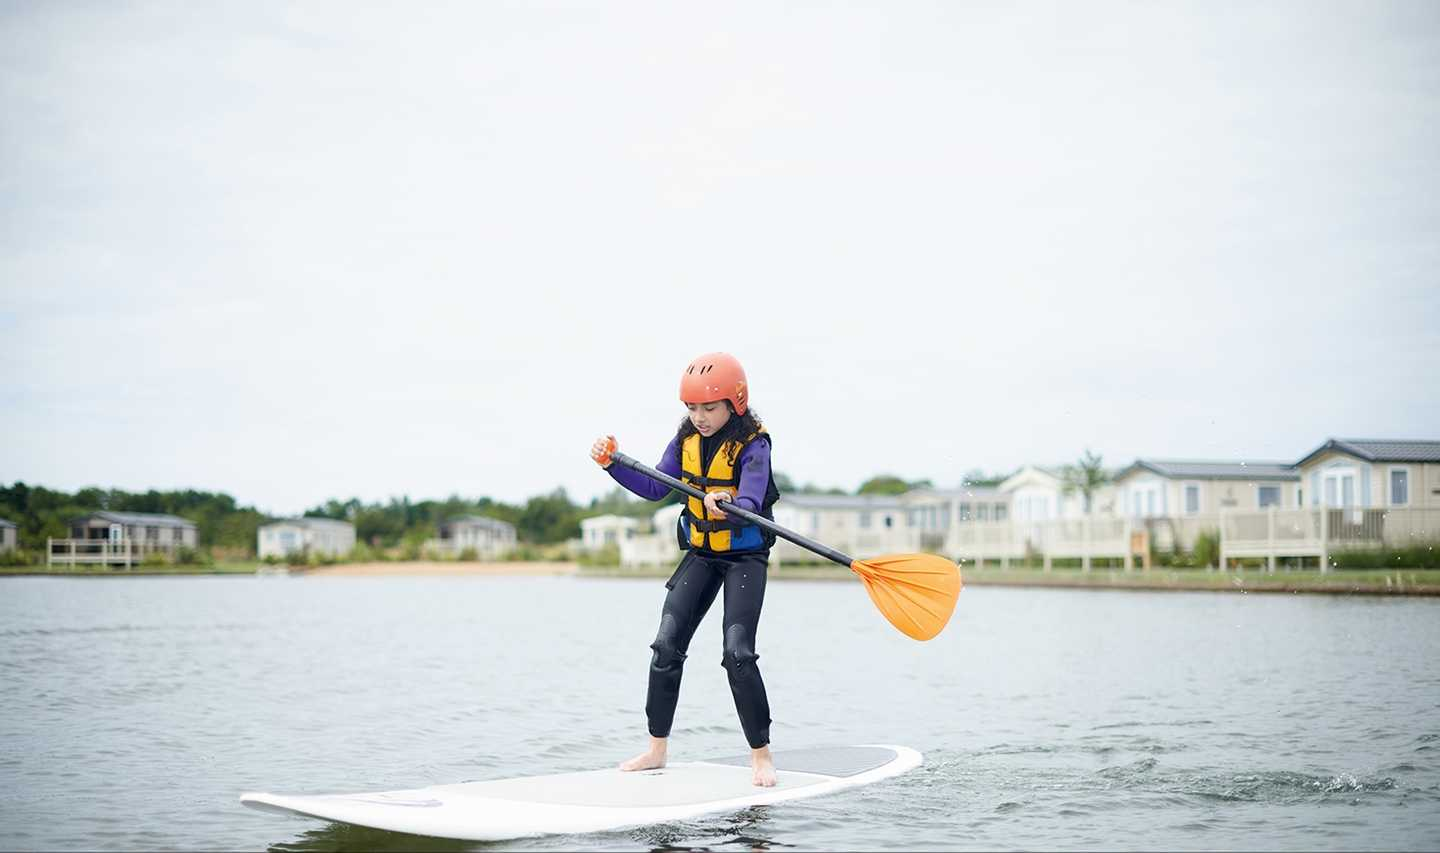 Child in wetsuit enjoying lake paddleboarding